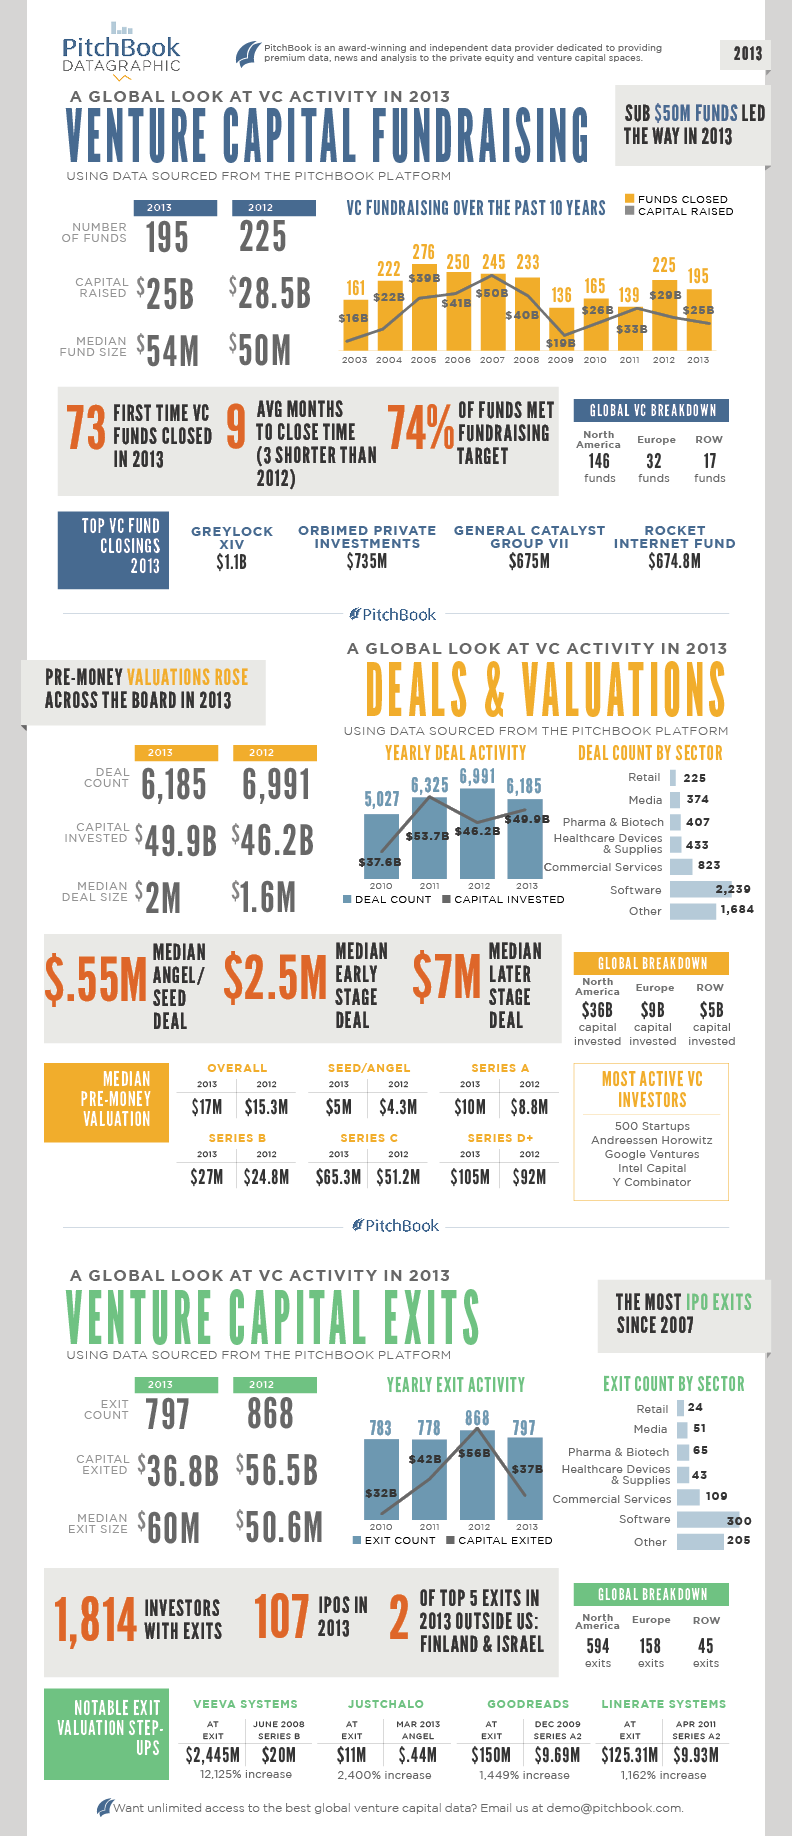 PitchBook 2013 Venture Capital Datagraphic